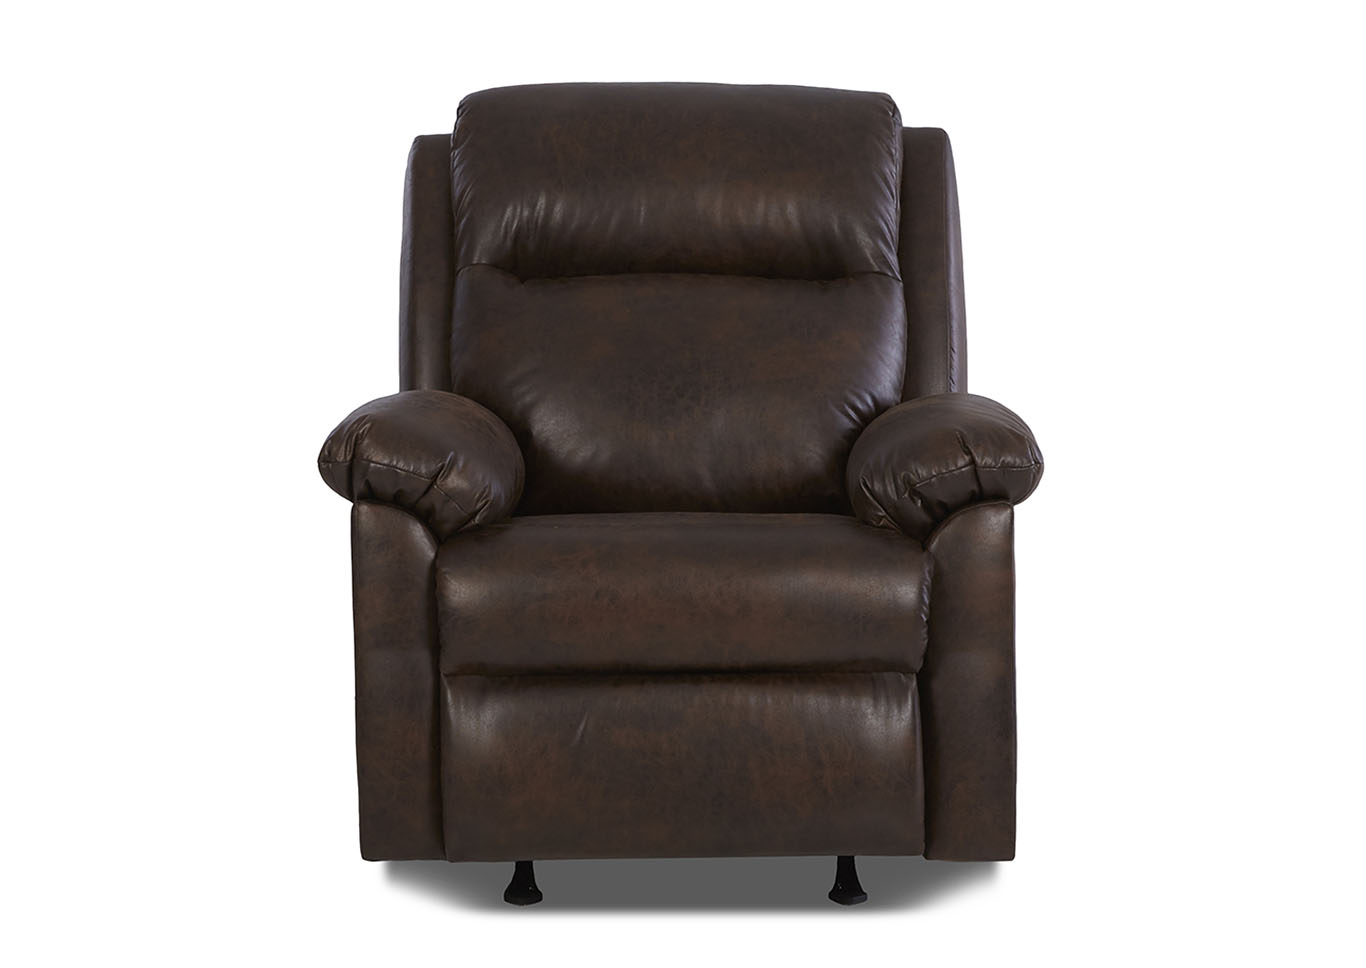 Amari Reclining Leather & Vinyl Chair,Klaussner Home Furnishings